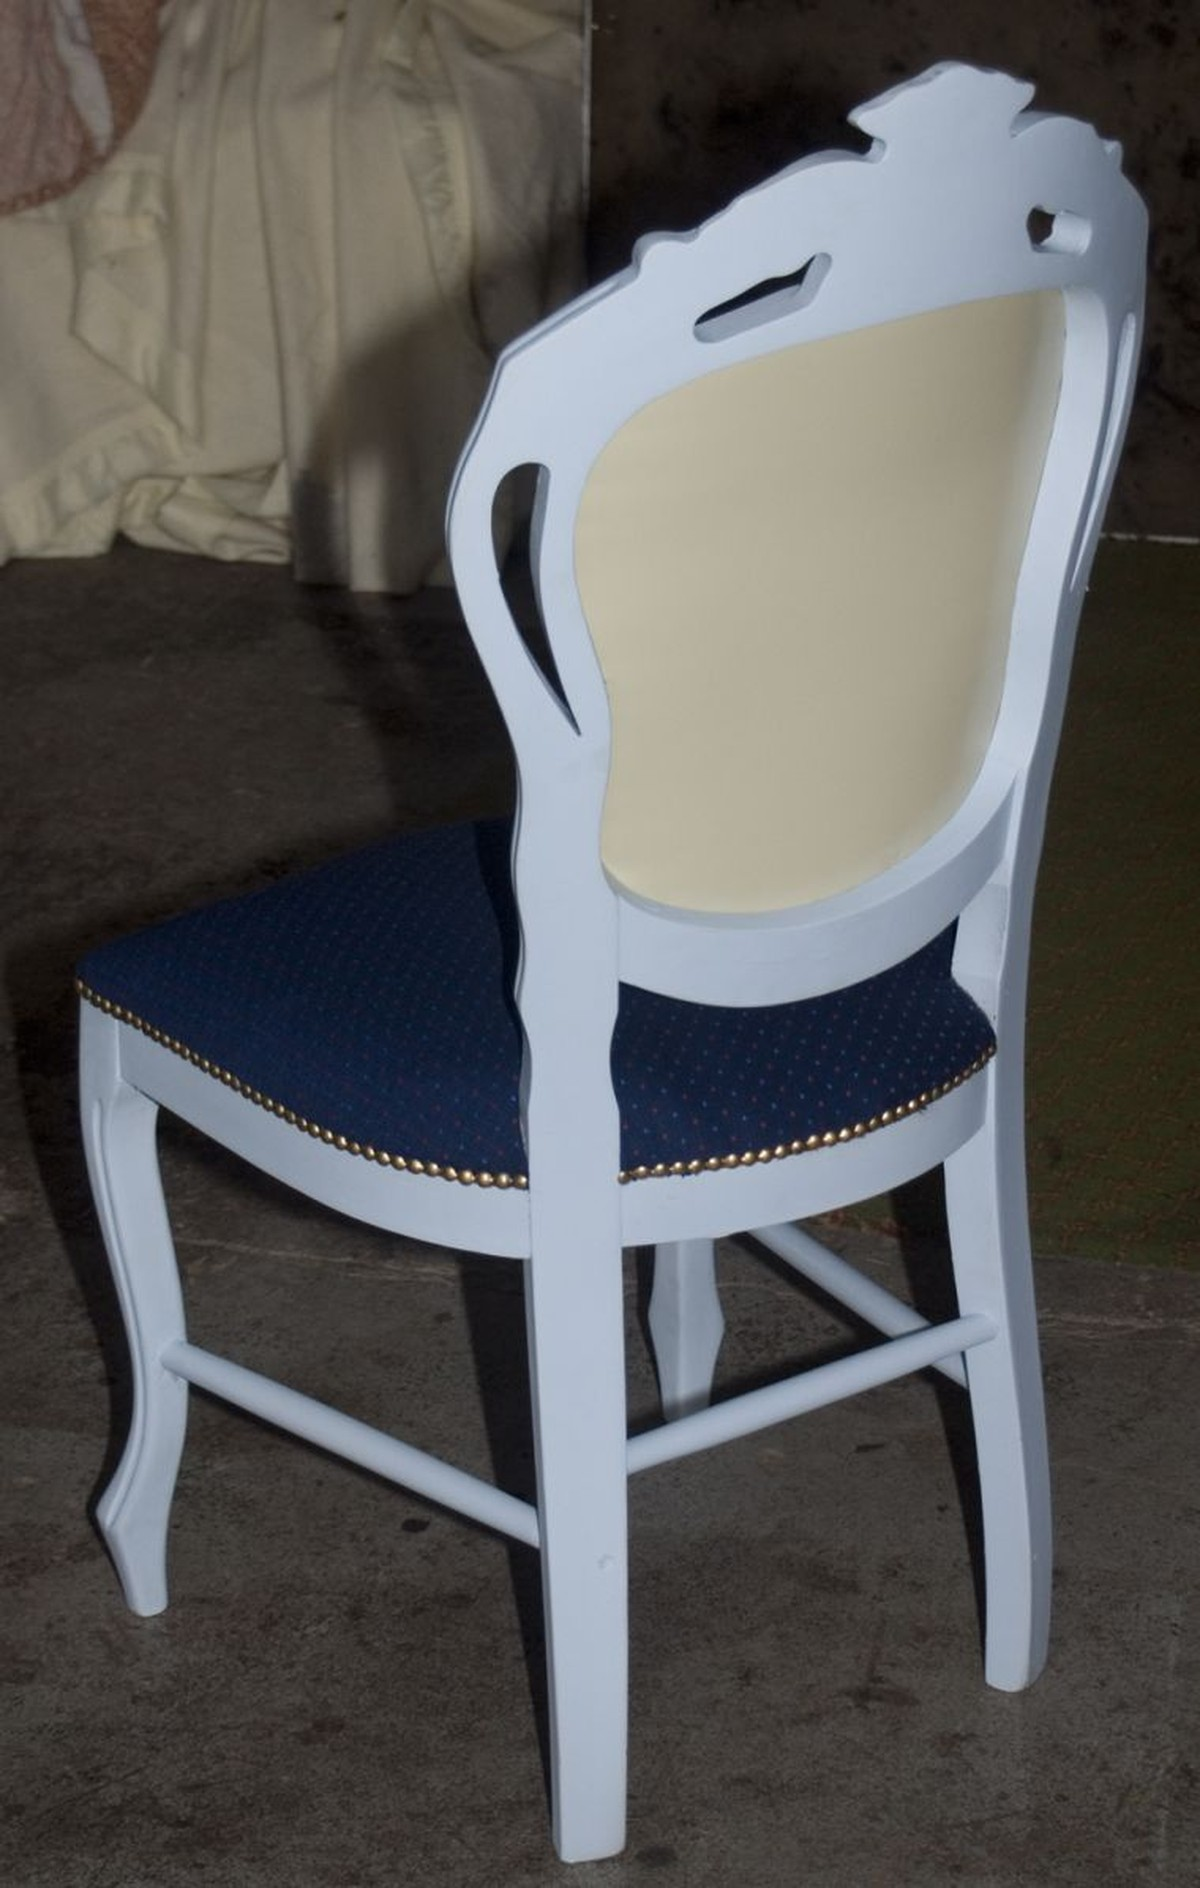 Secondhand Hotel Furniture Banquet Chair Vintage Sky